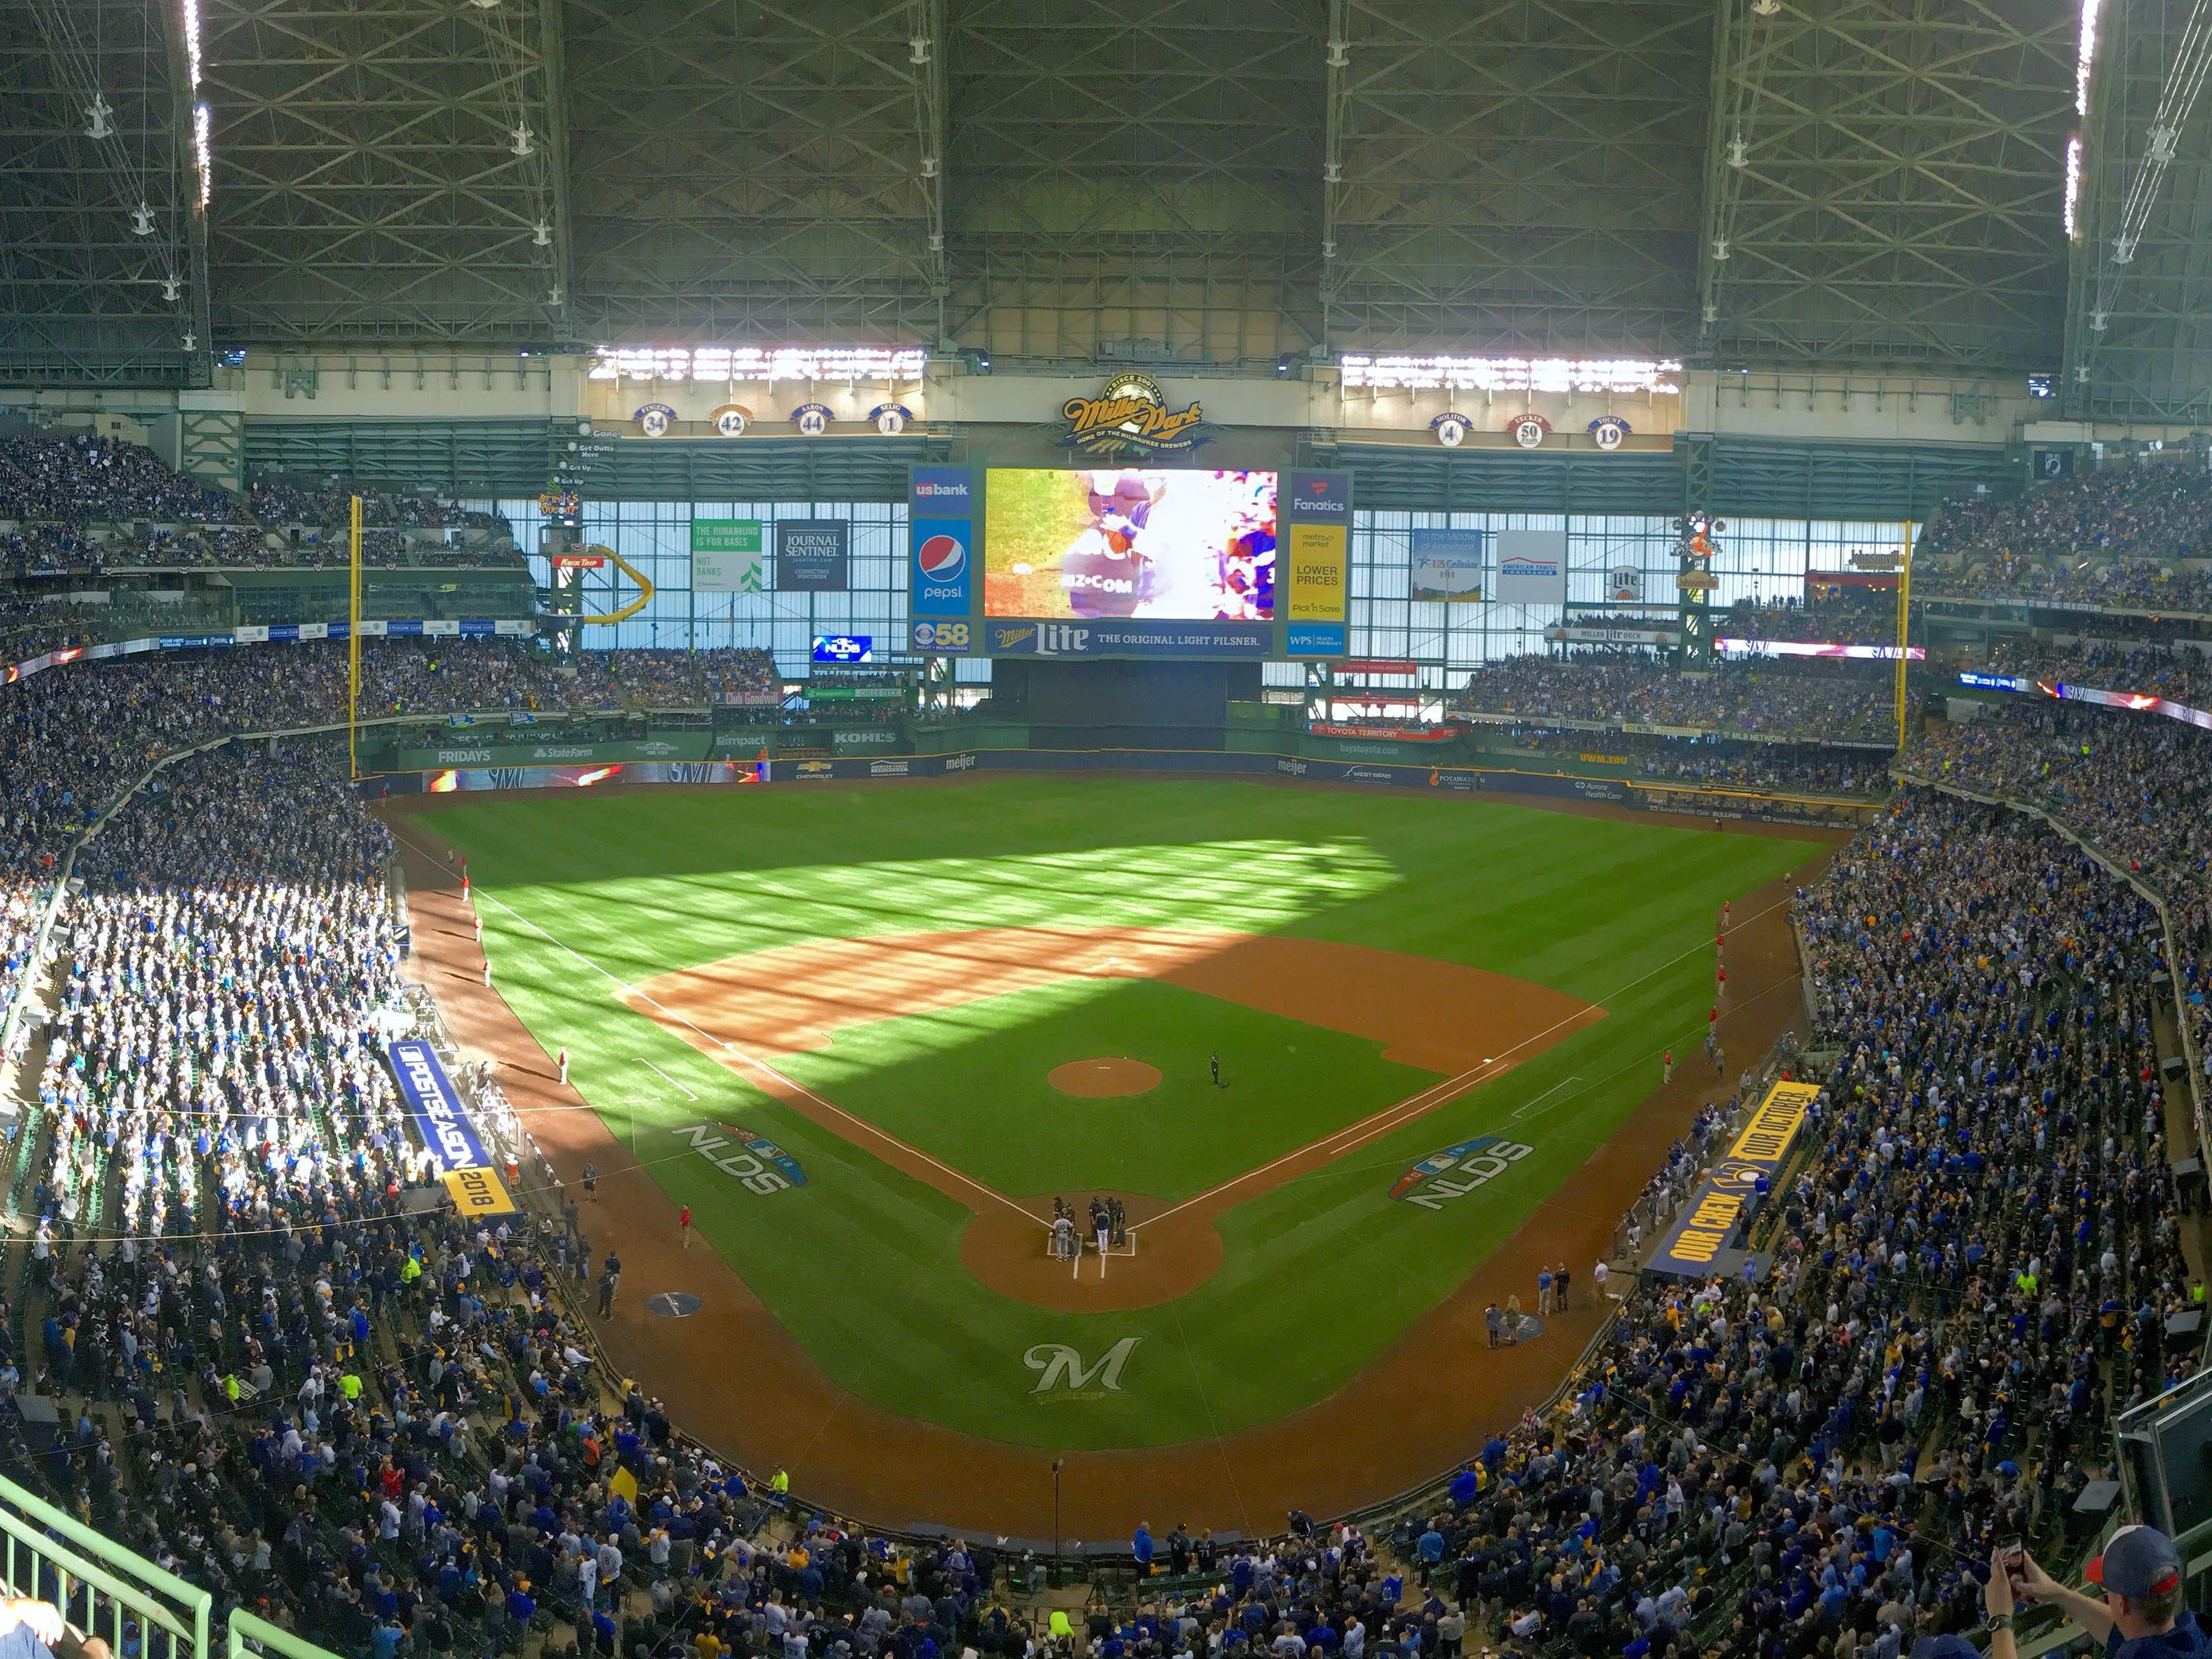 A sold-out Miller Park is pictured just before the start of the Milwaukee Brewers National League Divisional Series game against the Colorado Rockies on Thursday.